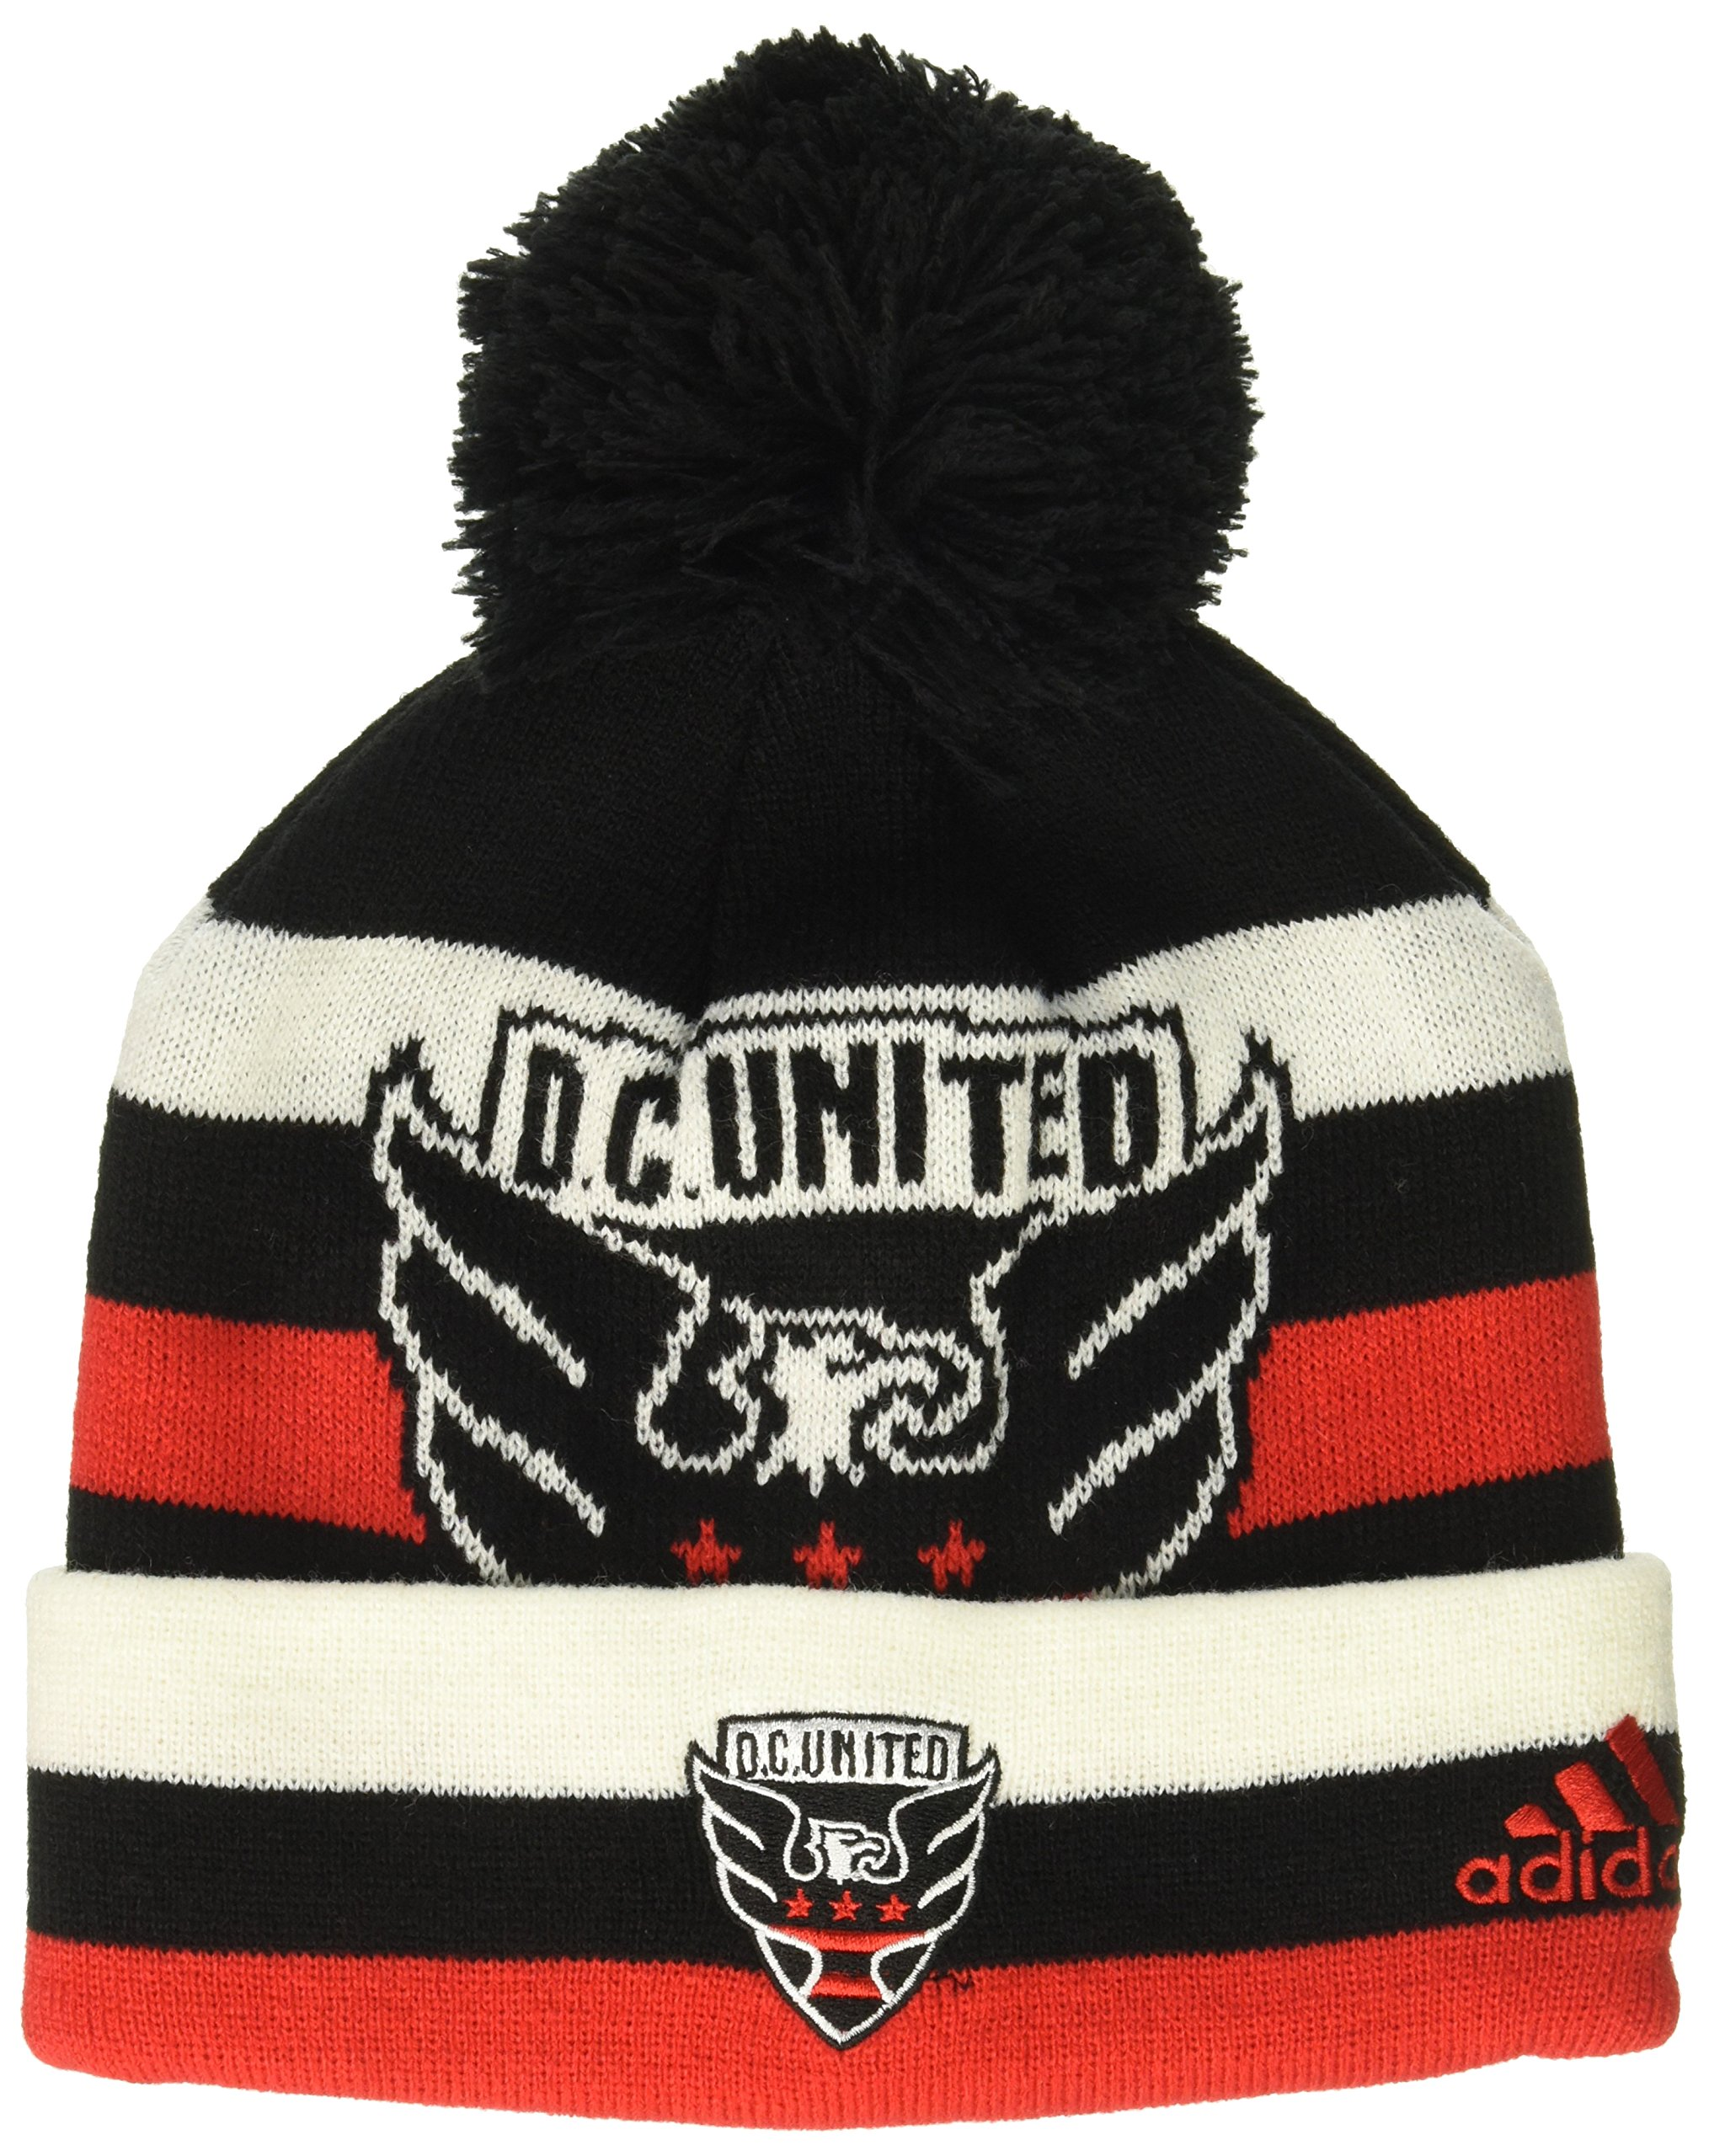 MLS D.C. United R S8FDS Youth Boys Cuffed Knit Hat with Pom, One Size (8), Black